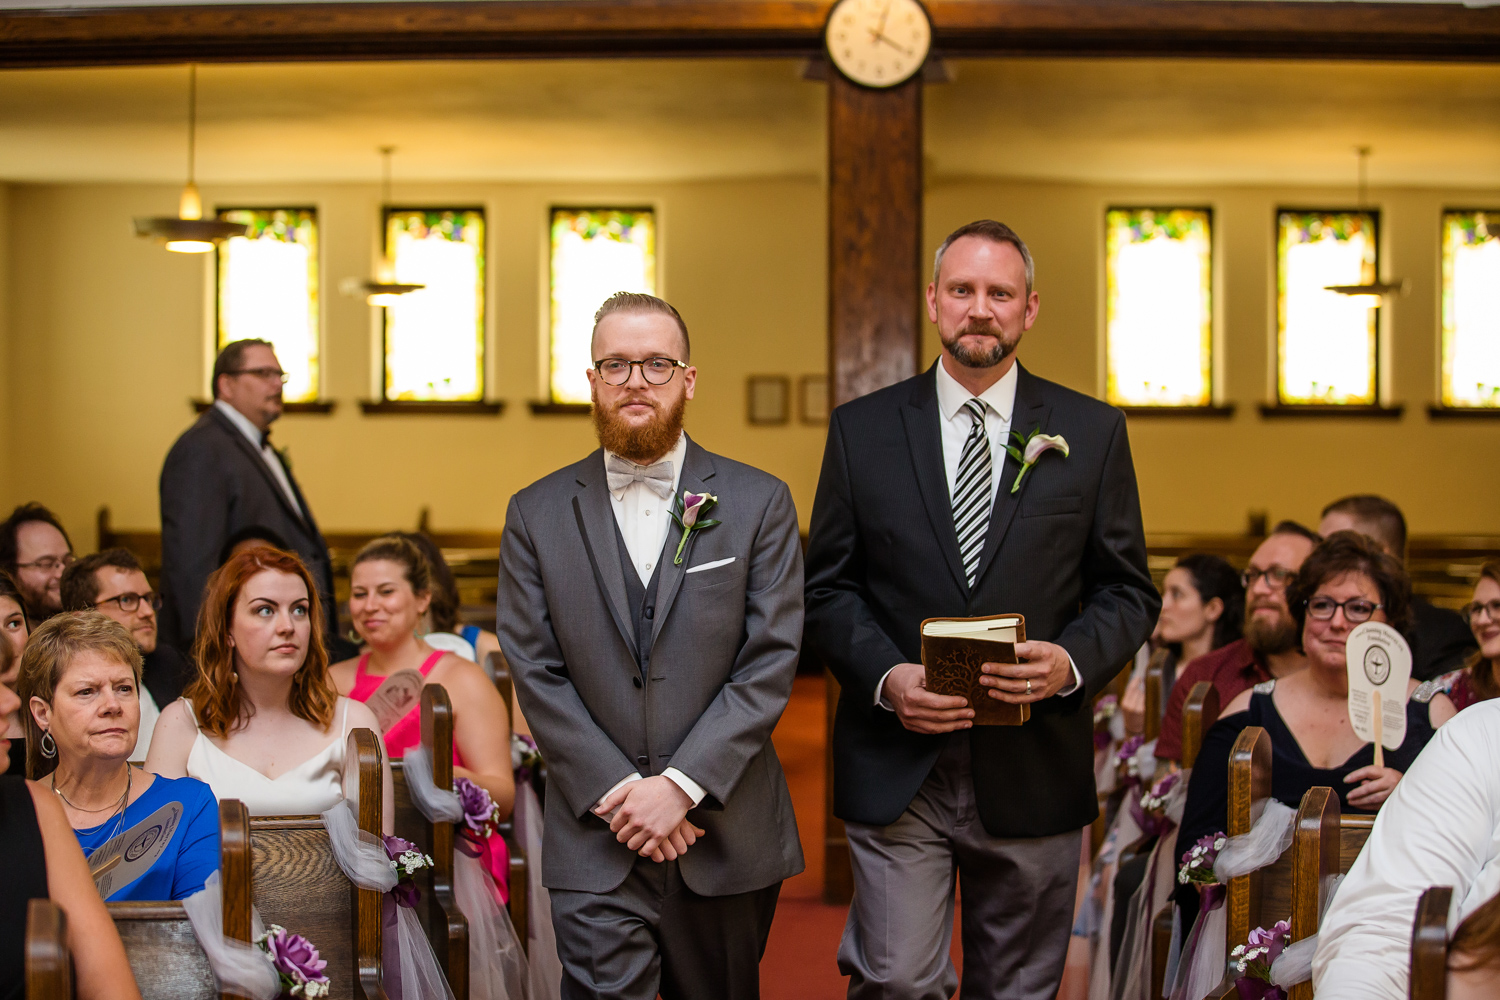 Groom and pastor walk down aisle